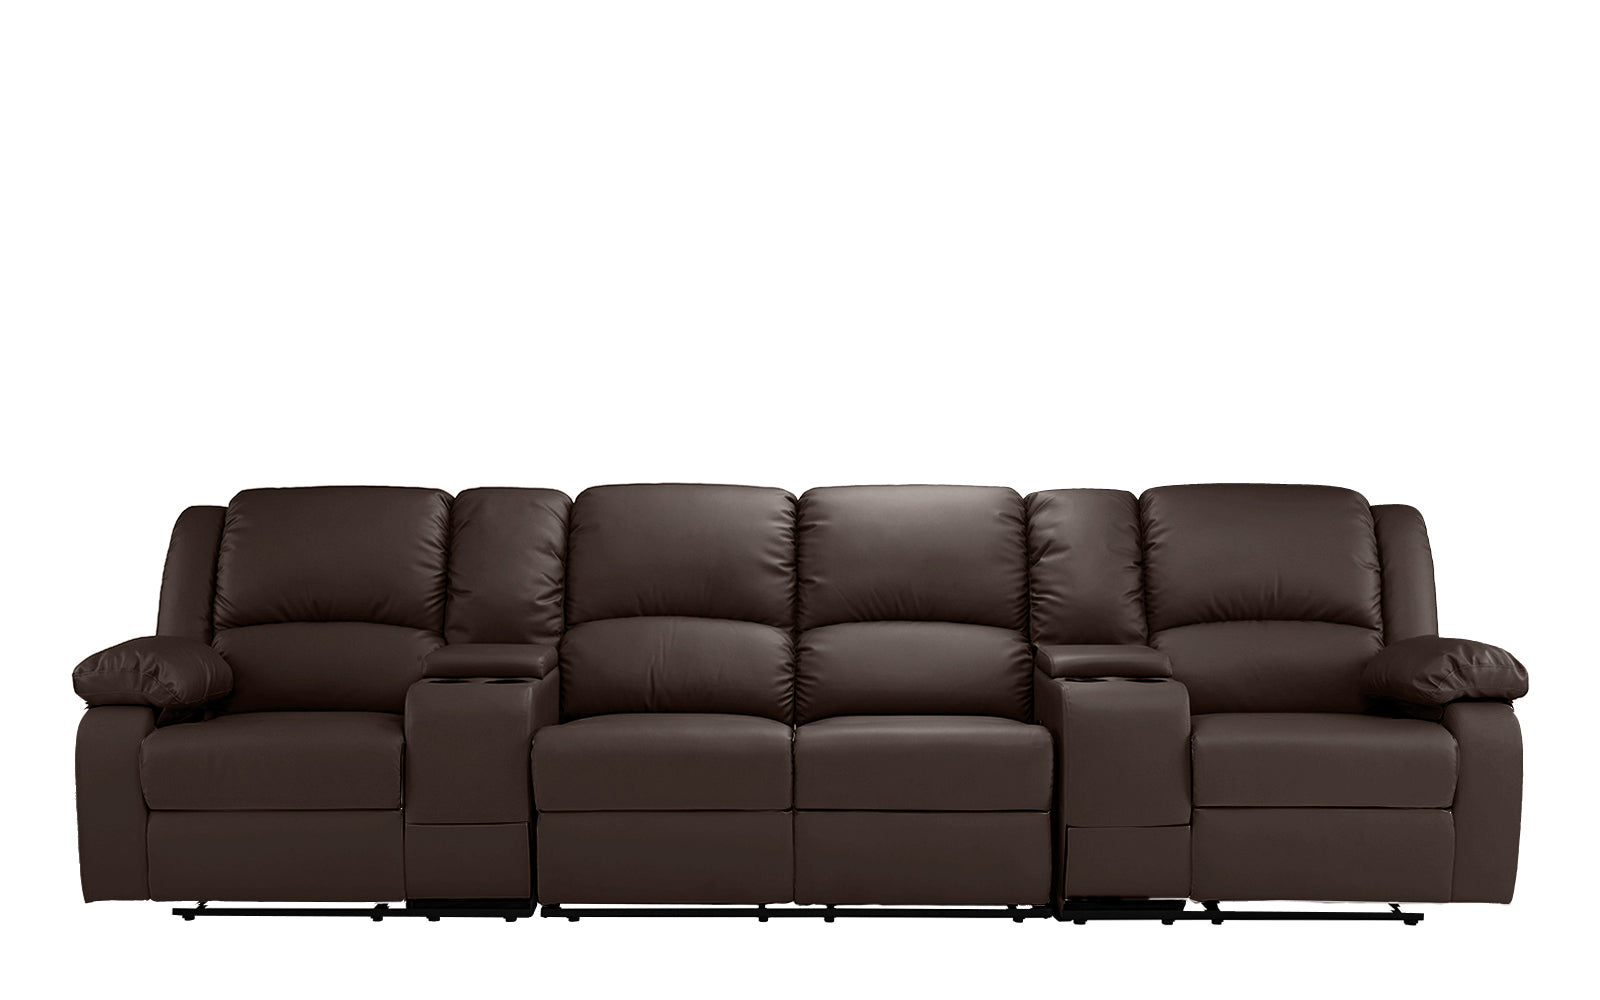 Heather 4 Seater Home Theater Recliner Sofa Sofamaniacom : EXP198 DBR1 1 from www.sofamania.com size 1600 x 1000 jpeg 135kB